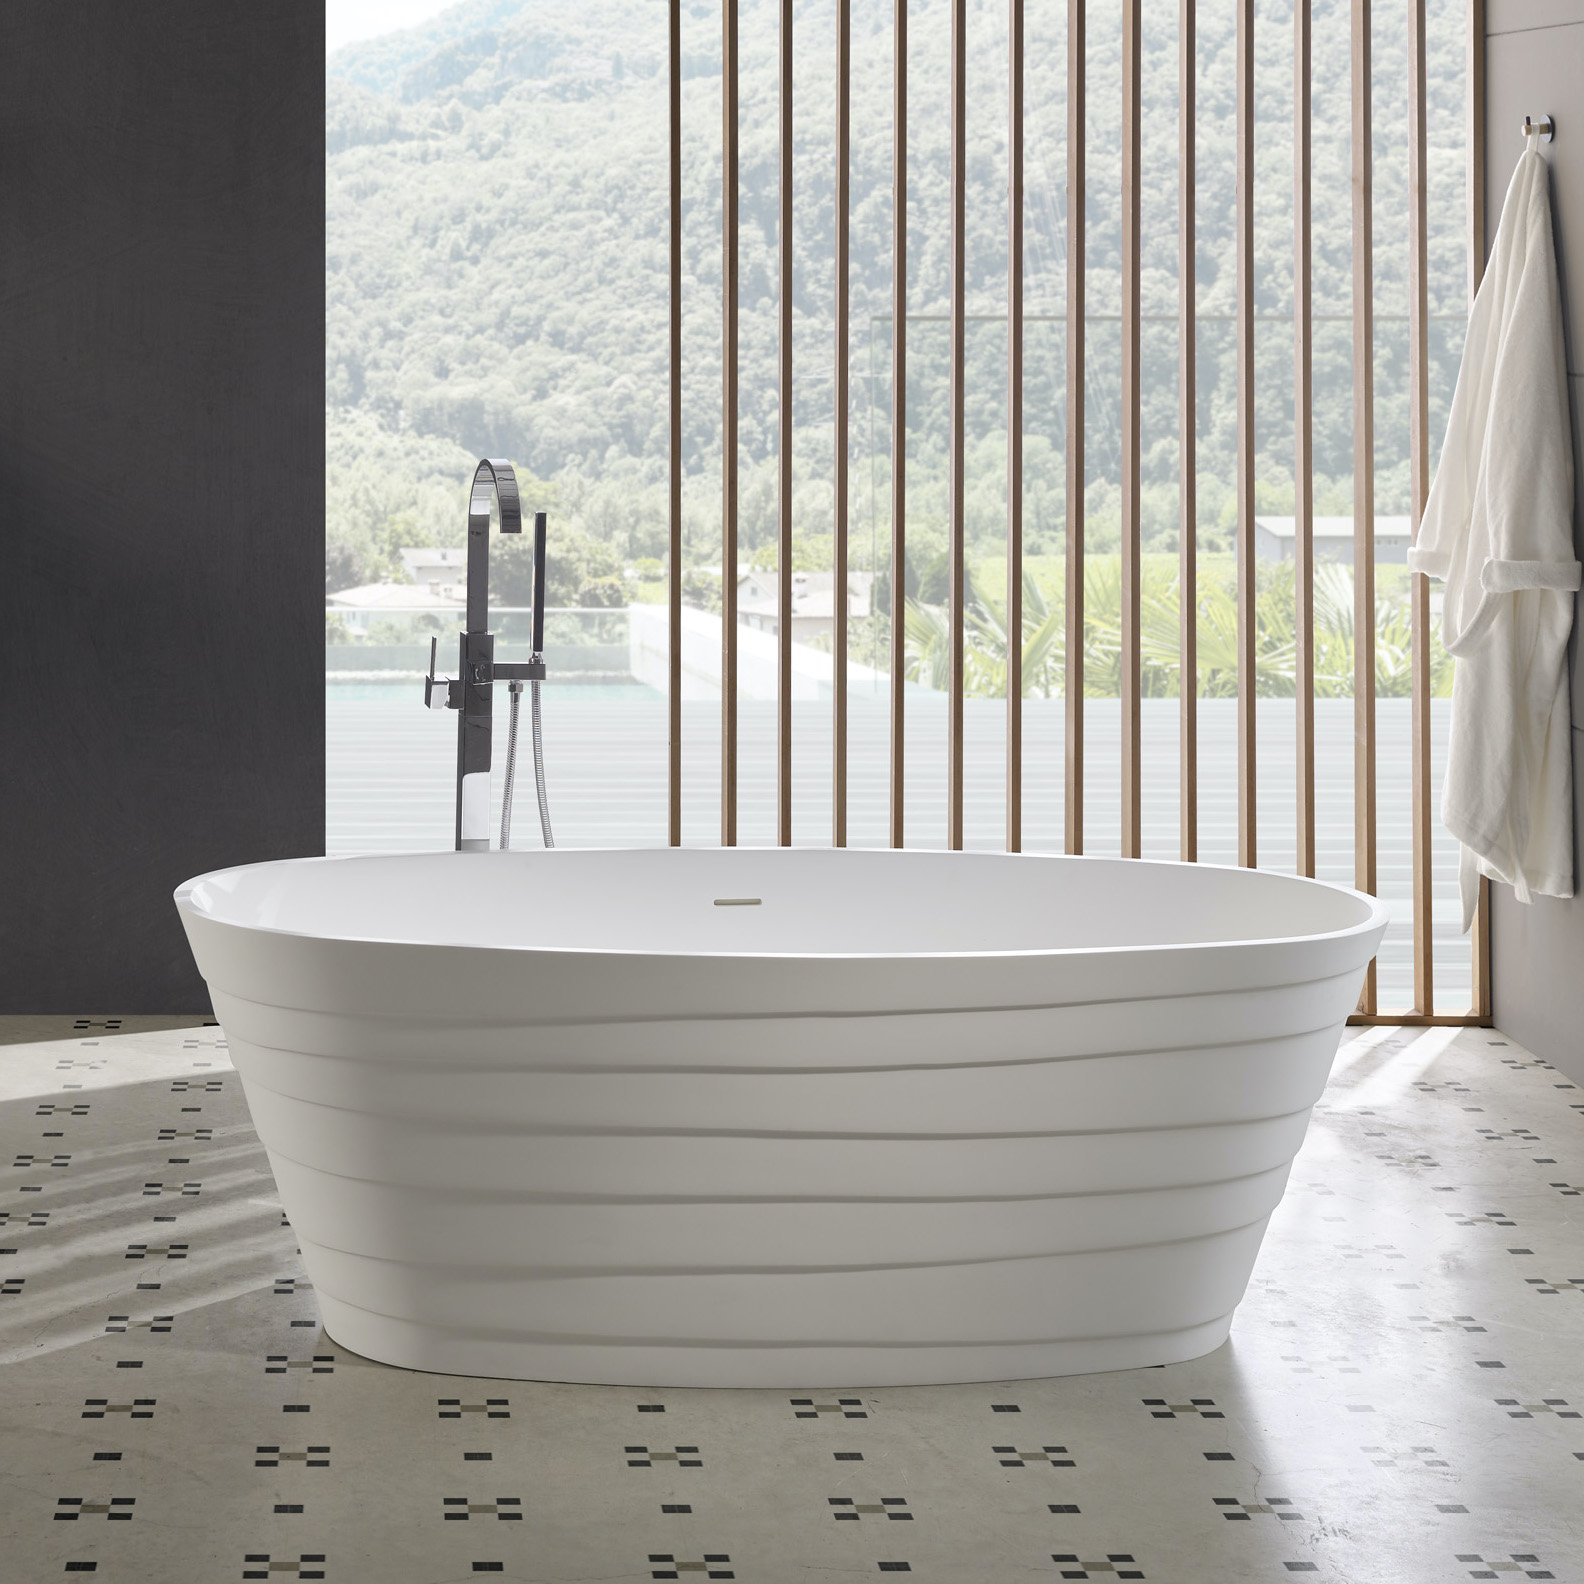 7 styles of freestanding bathtub for your luxury remodel